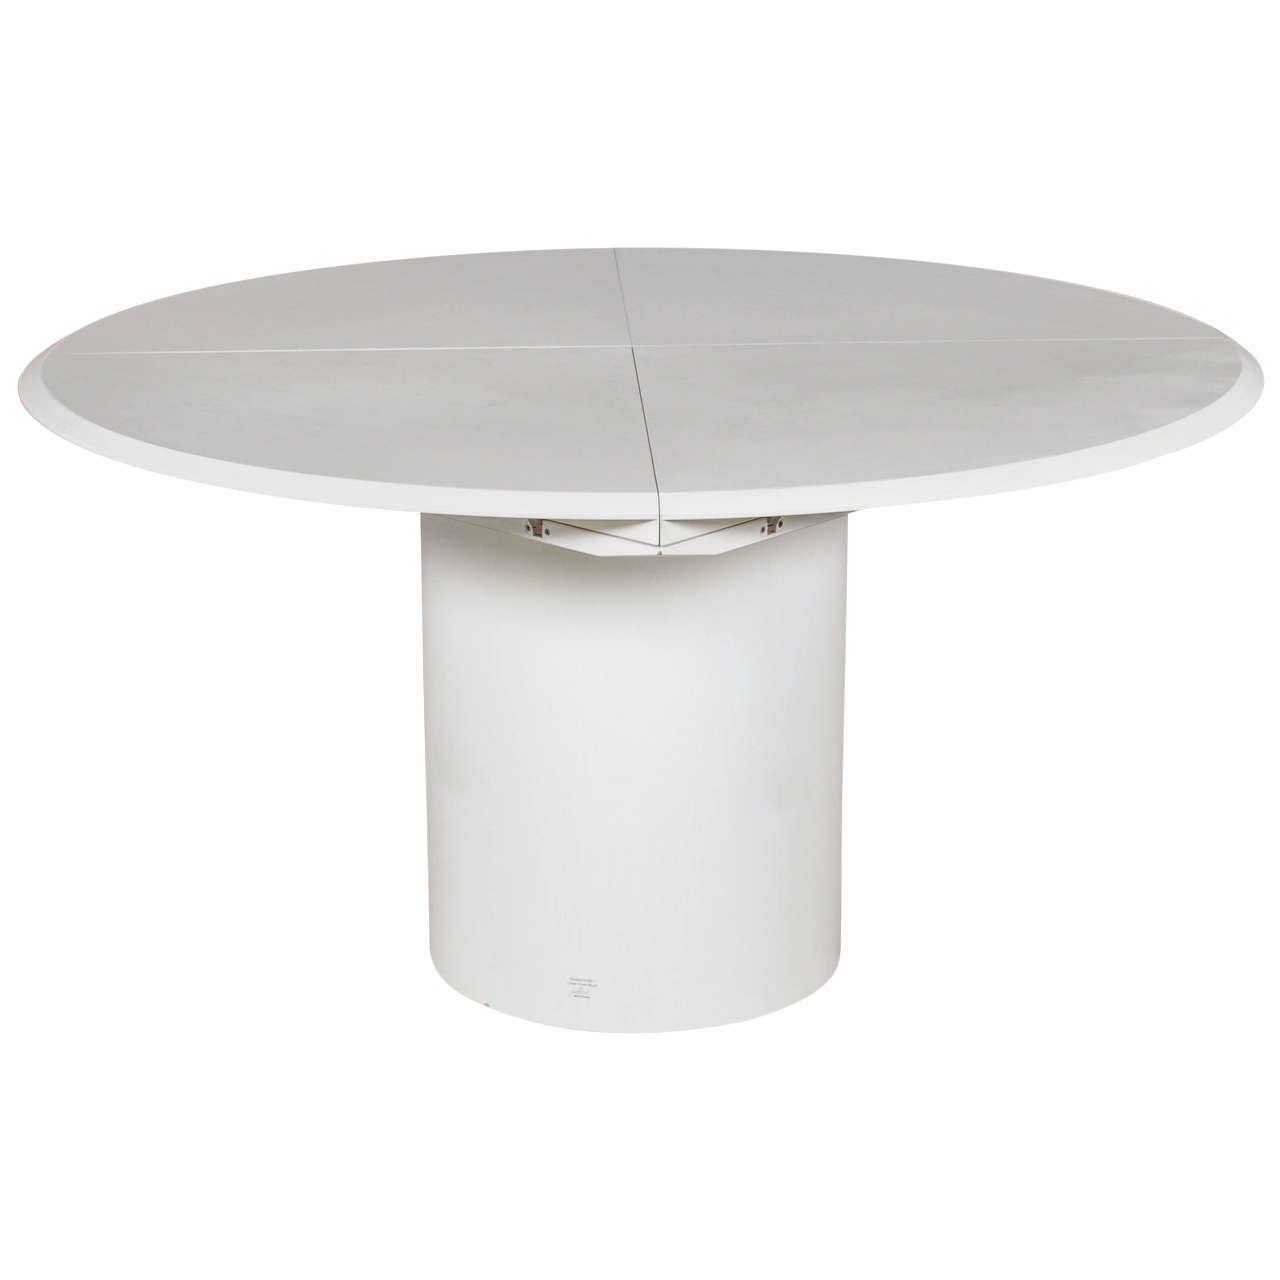 Multifunctional round square and oval dining table for - Tisch oval weiay ...